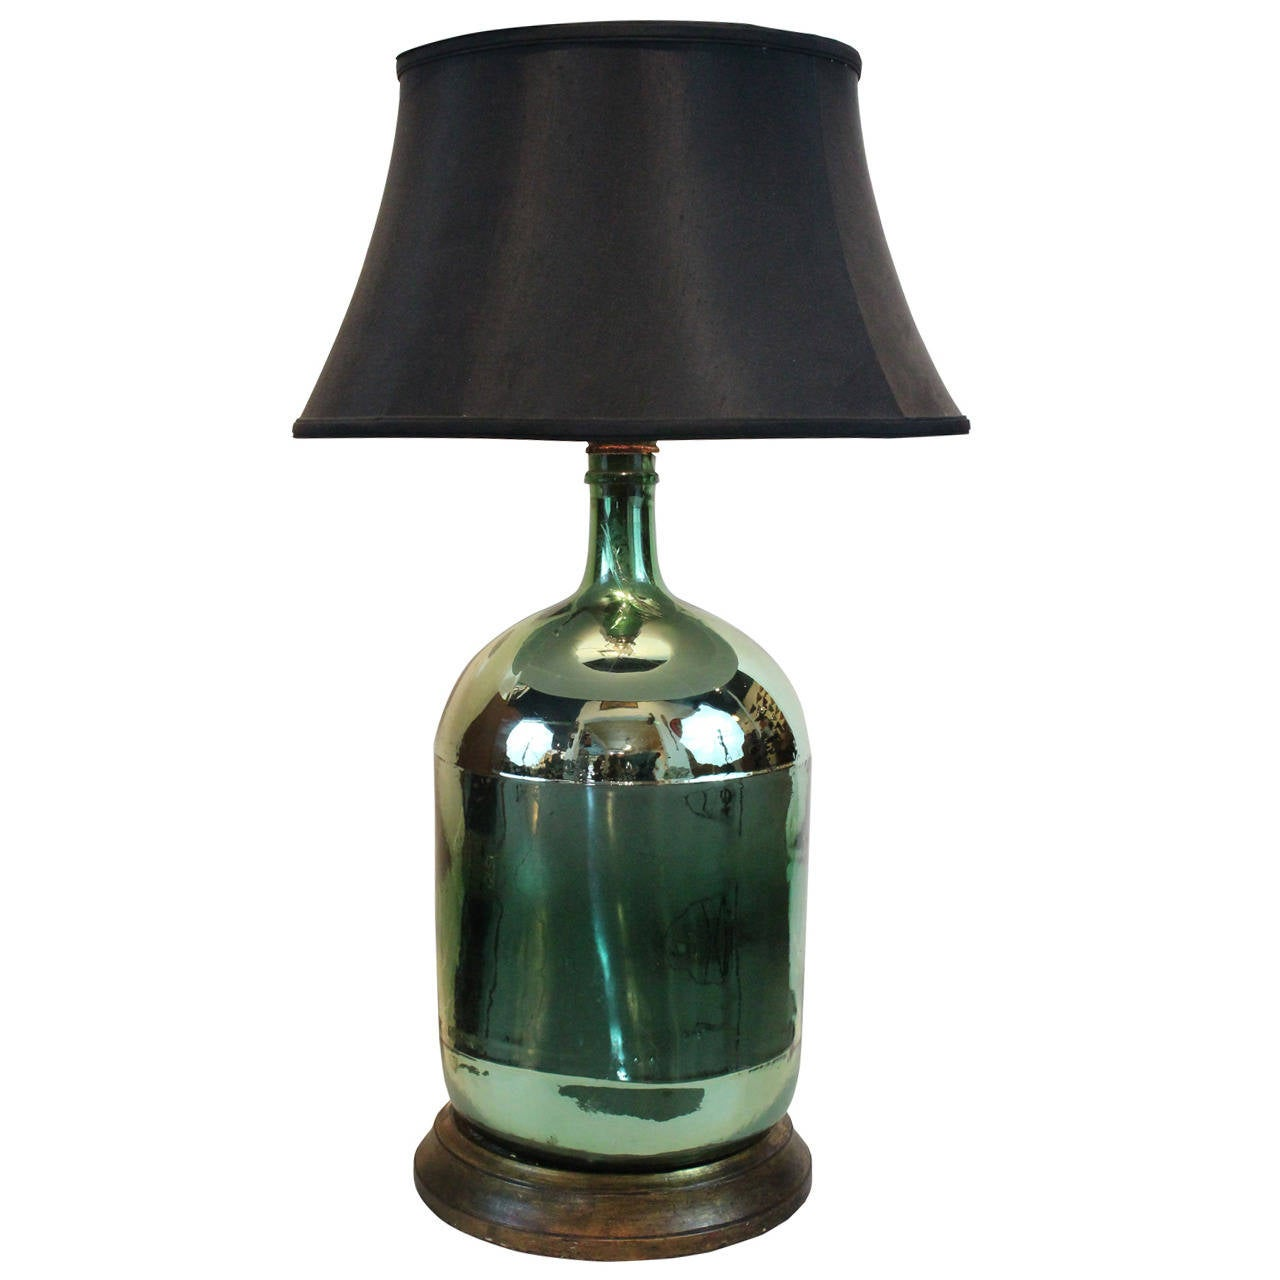 this green mercury glass lamp is no longer available. Black Bedroom Furniture Sets. Home Design Ideas